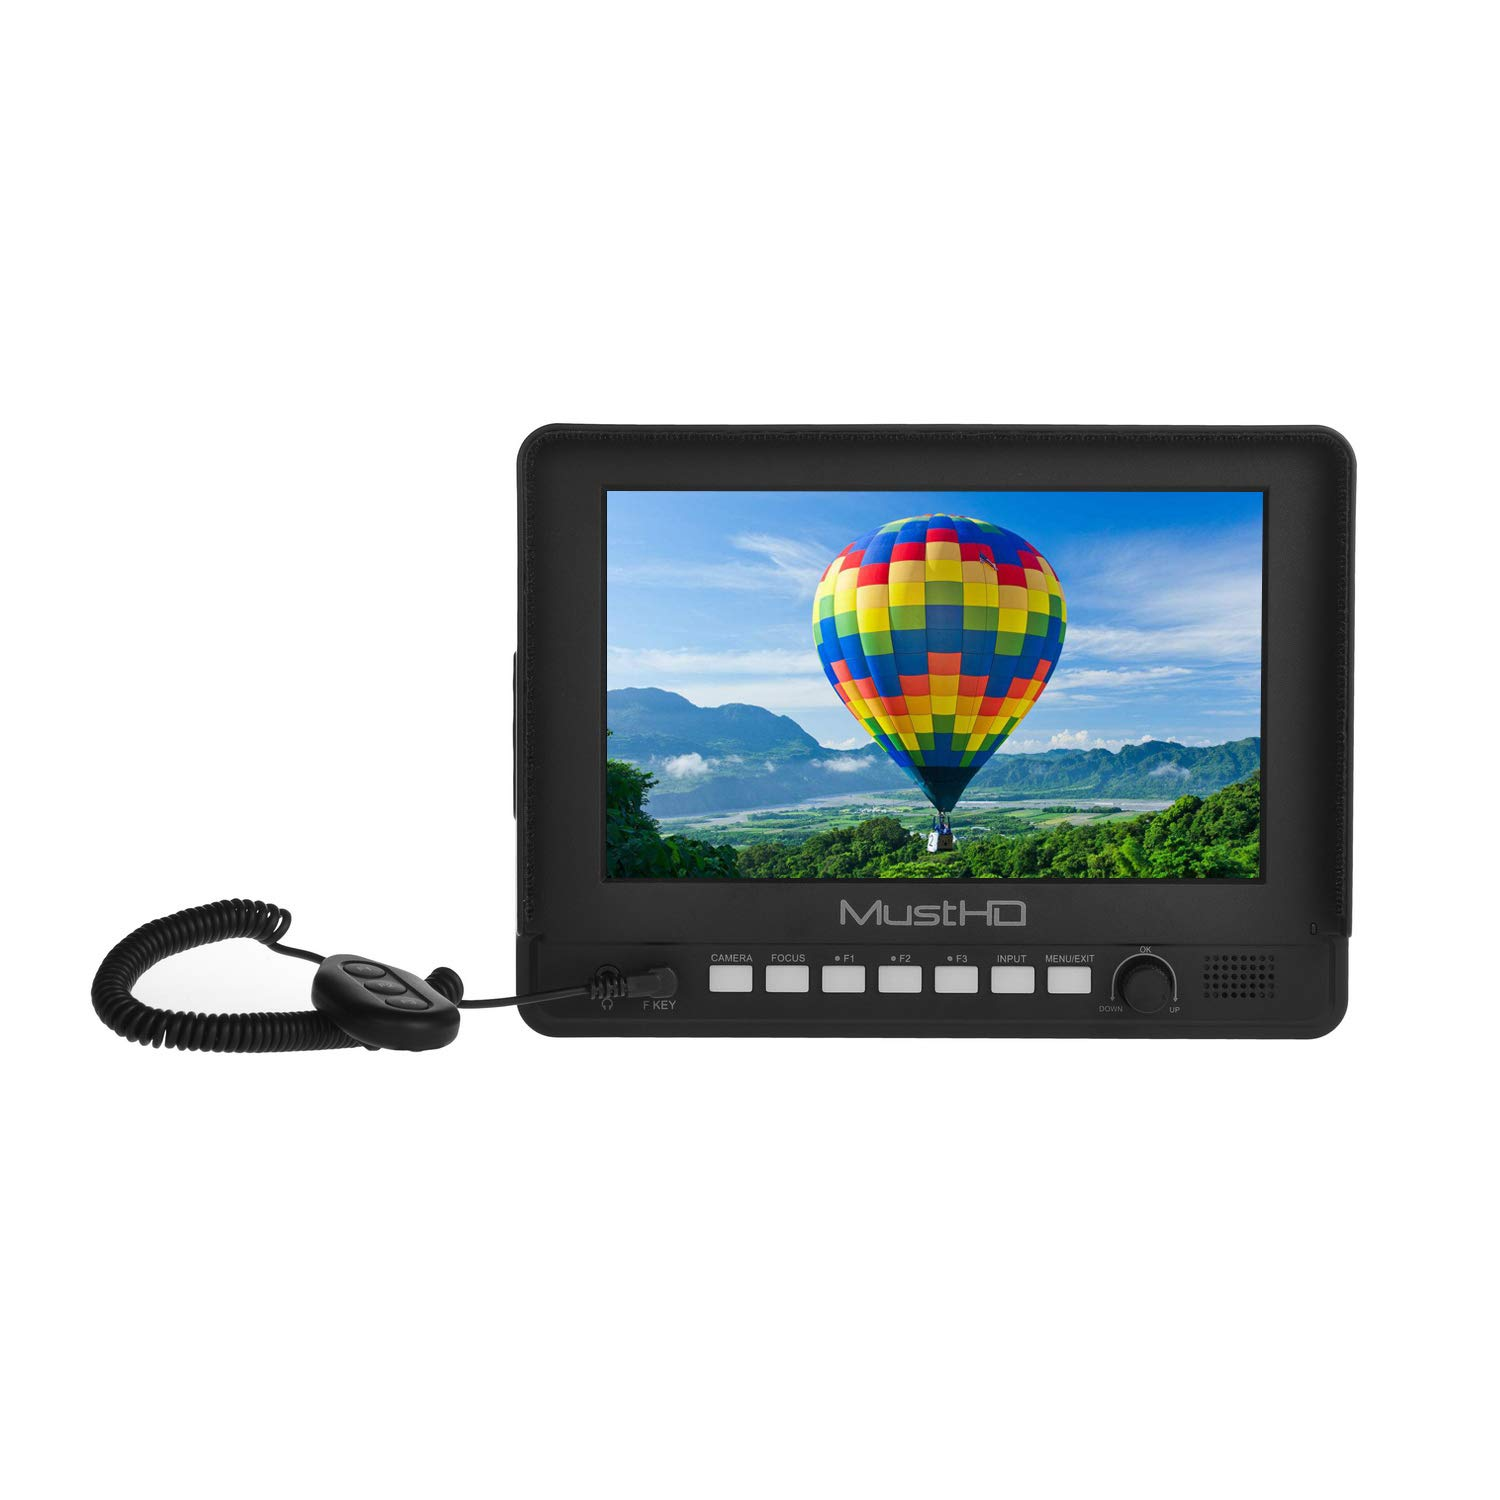 MustHD 7-inch Affordable HDMI On-Camera Field Monitor with Focus Assist/Color Peaking/Sun Hood,Support 1080P (M700H)